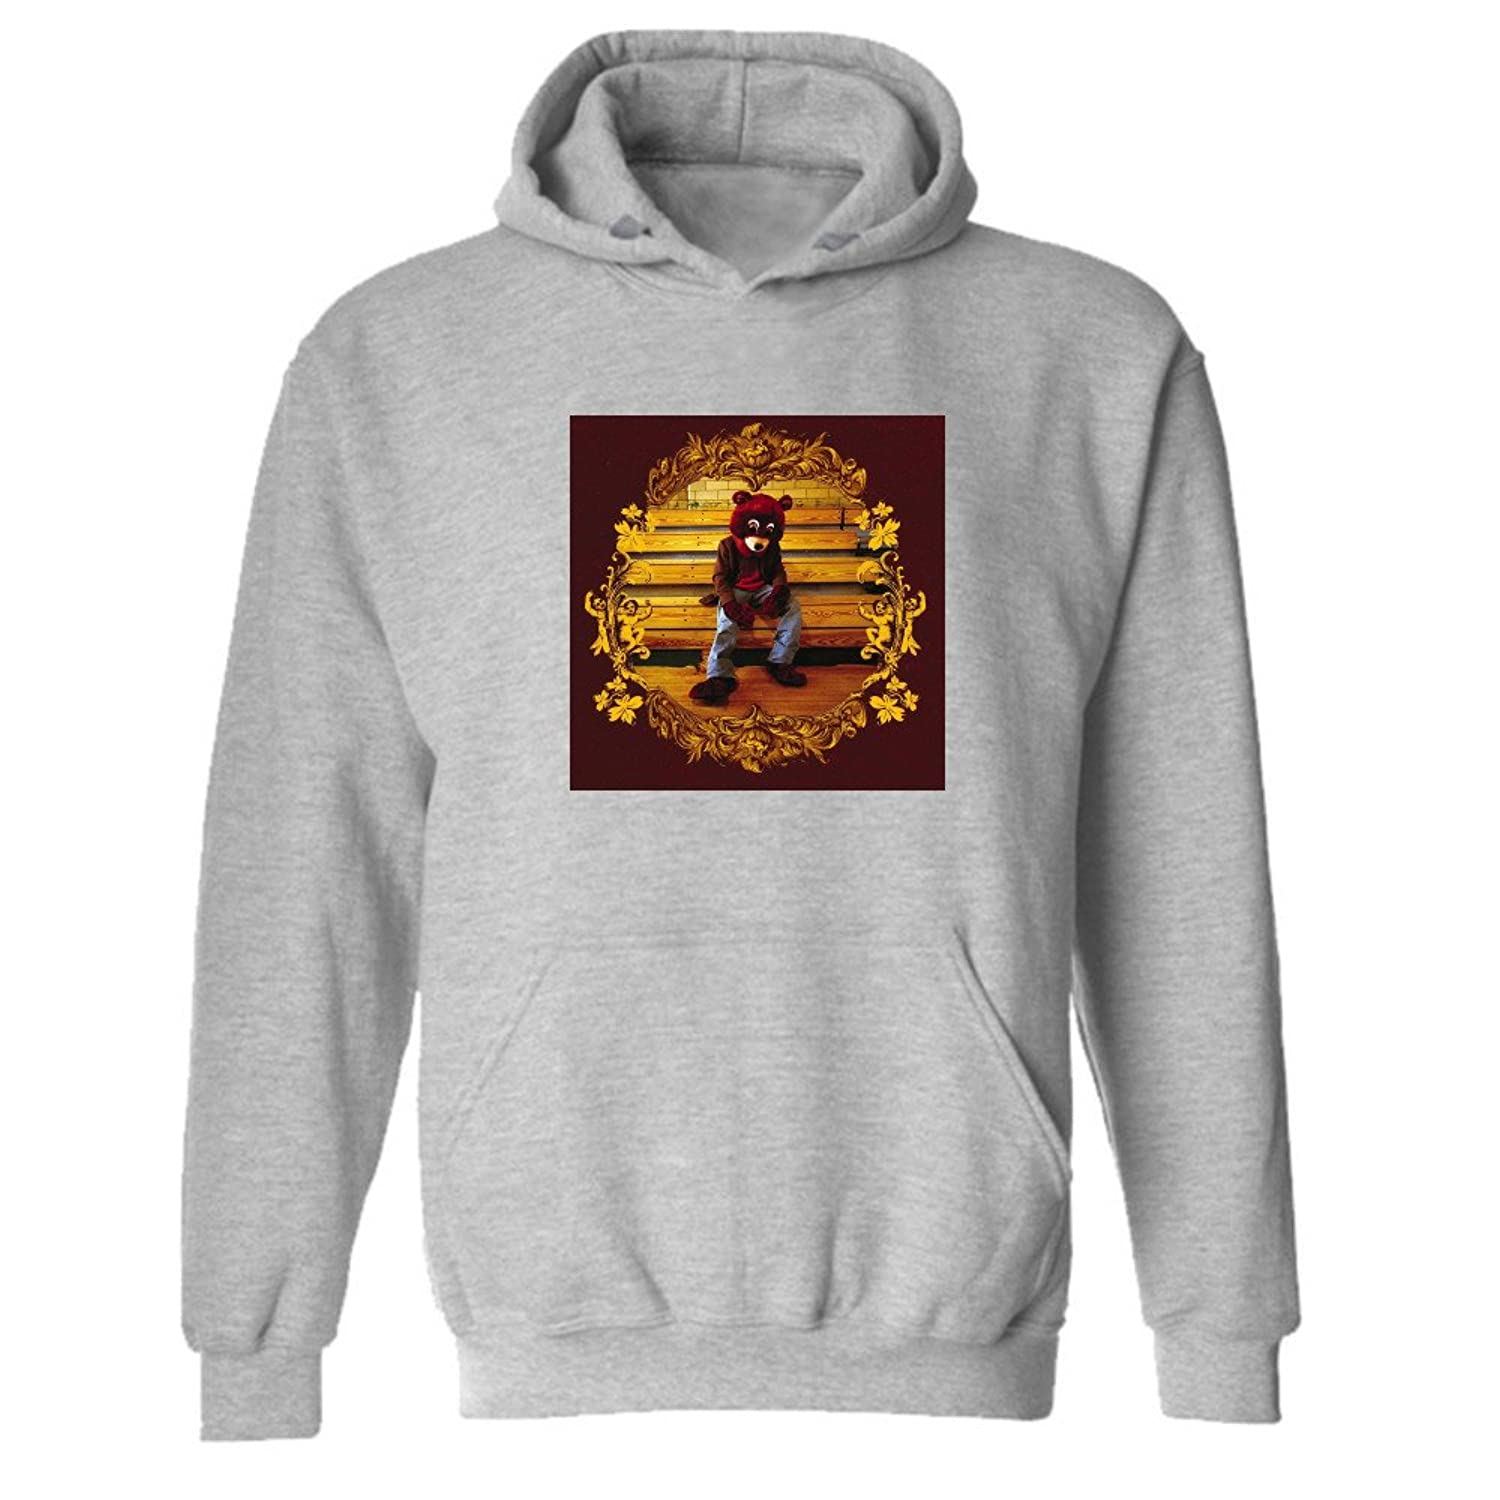 Best Kanye West The College Dropout Hoodie Yeezus Hip Hop Sweatshirt